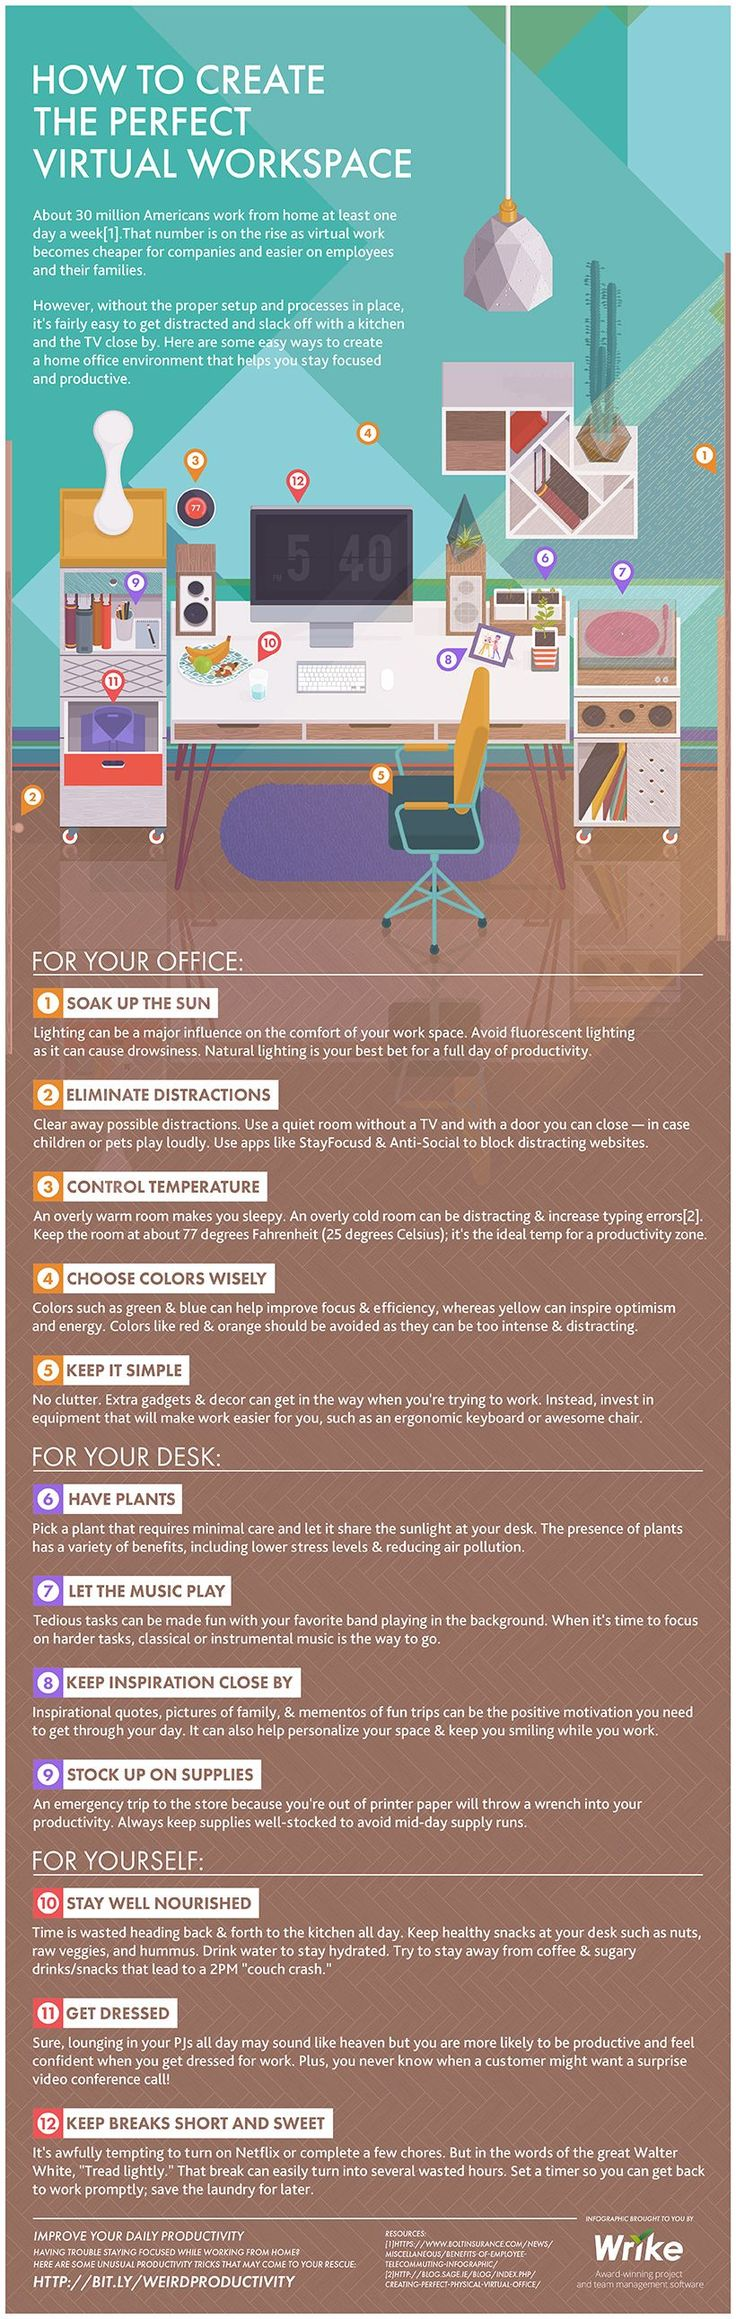 How to Create The Perfect Virtual Workspace #Infographic #HowTo